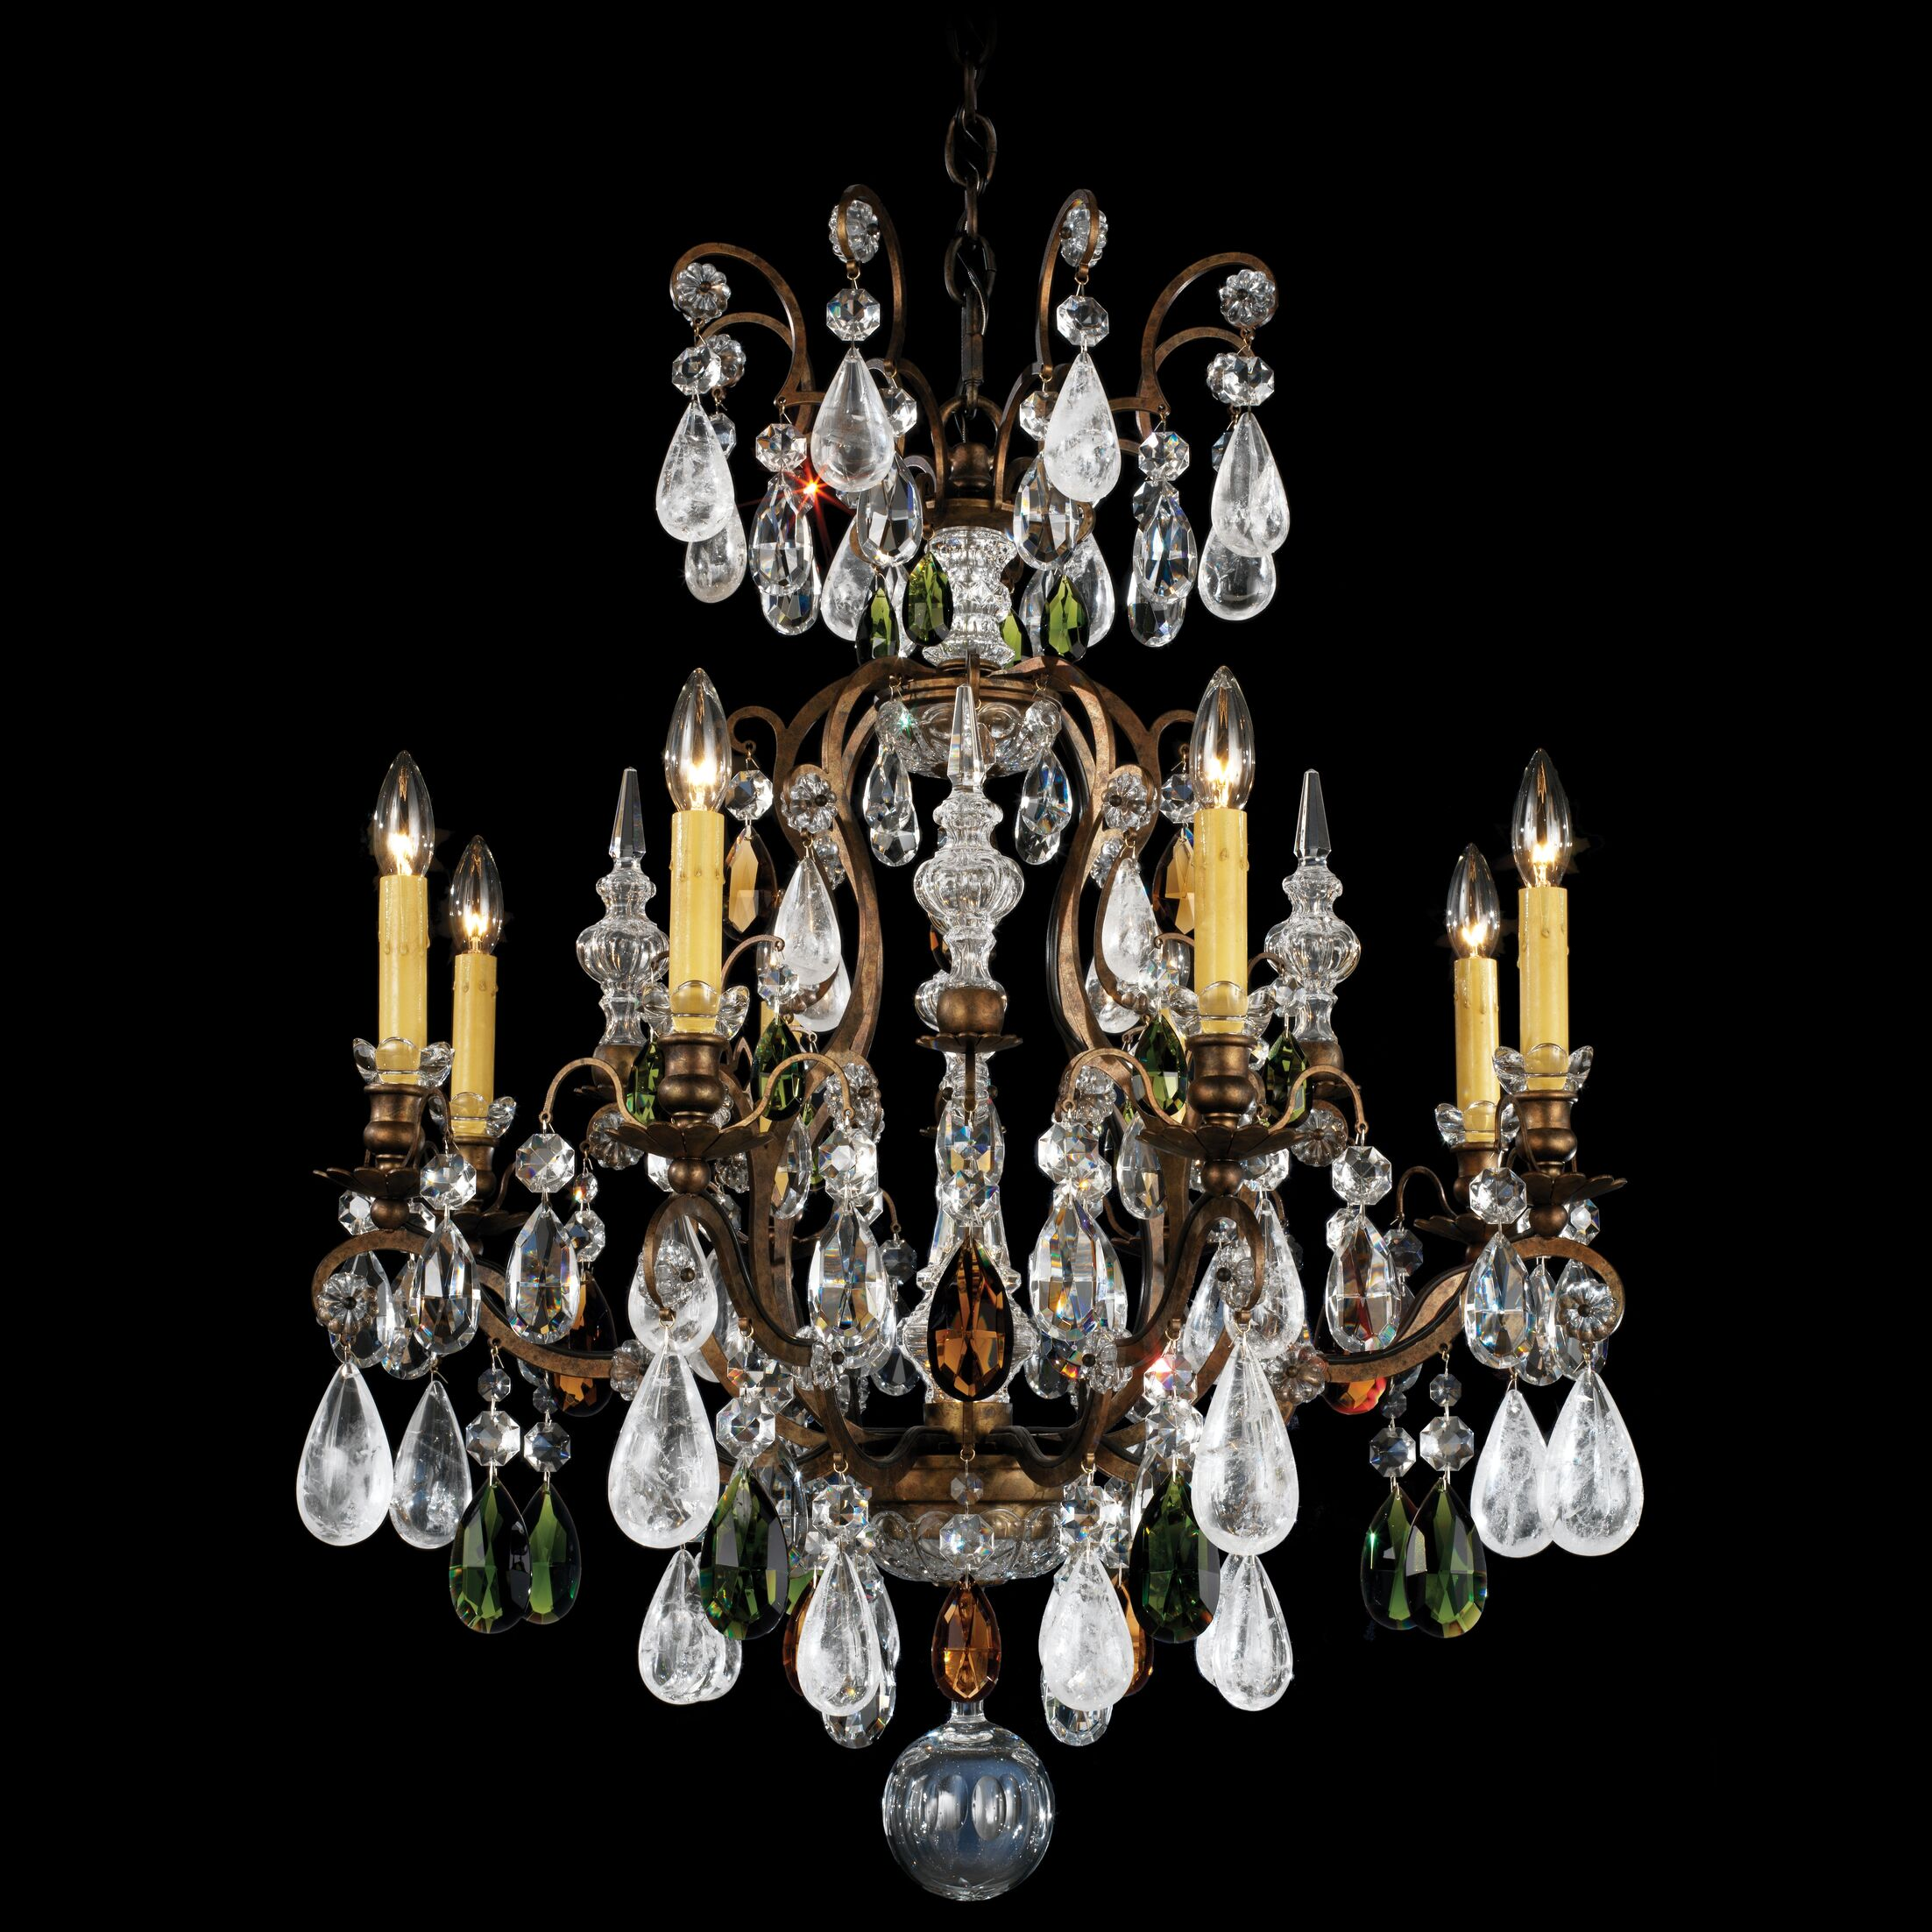 Renaissance Rock 8-Light Chandelier Finish: Heirloom Gold, Crystal Color: Combination of Olive and Smoke